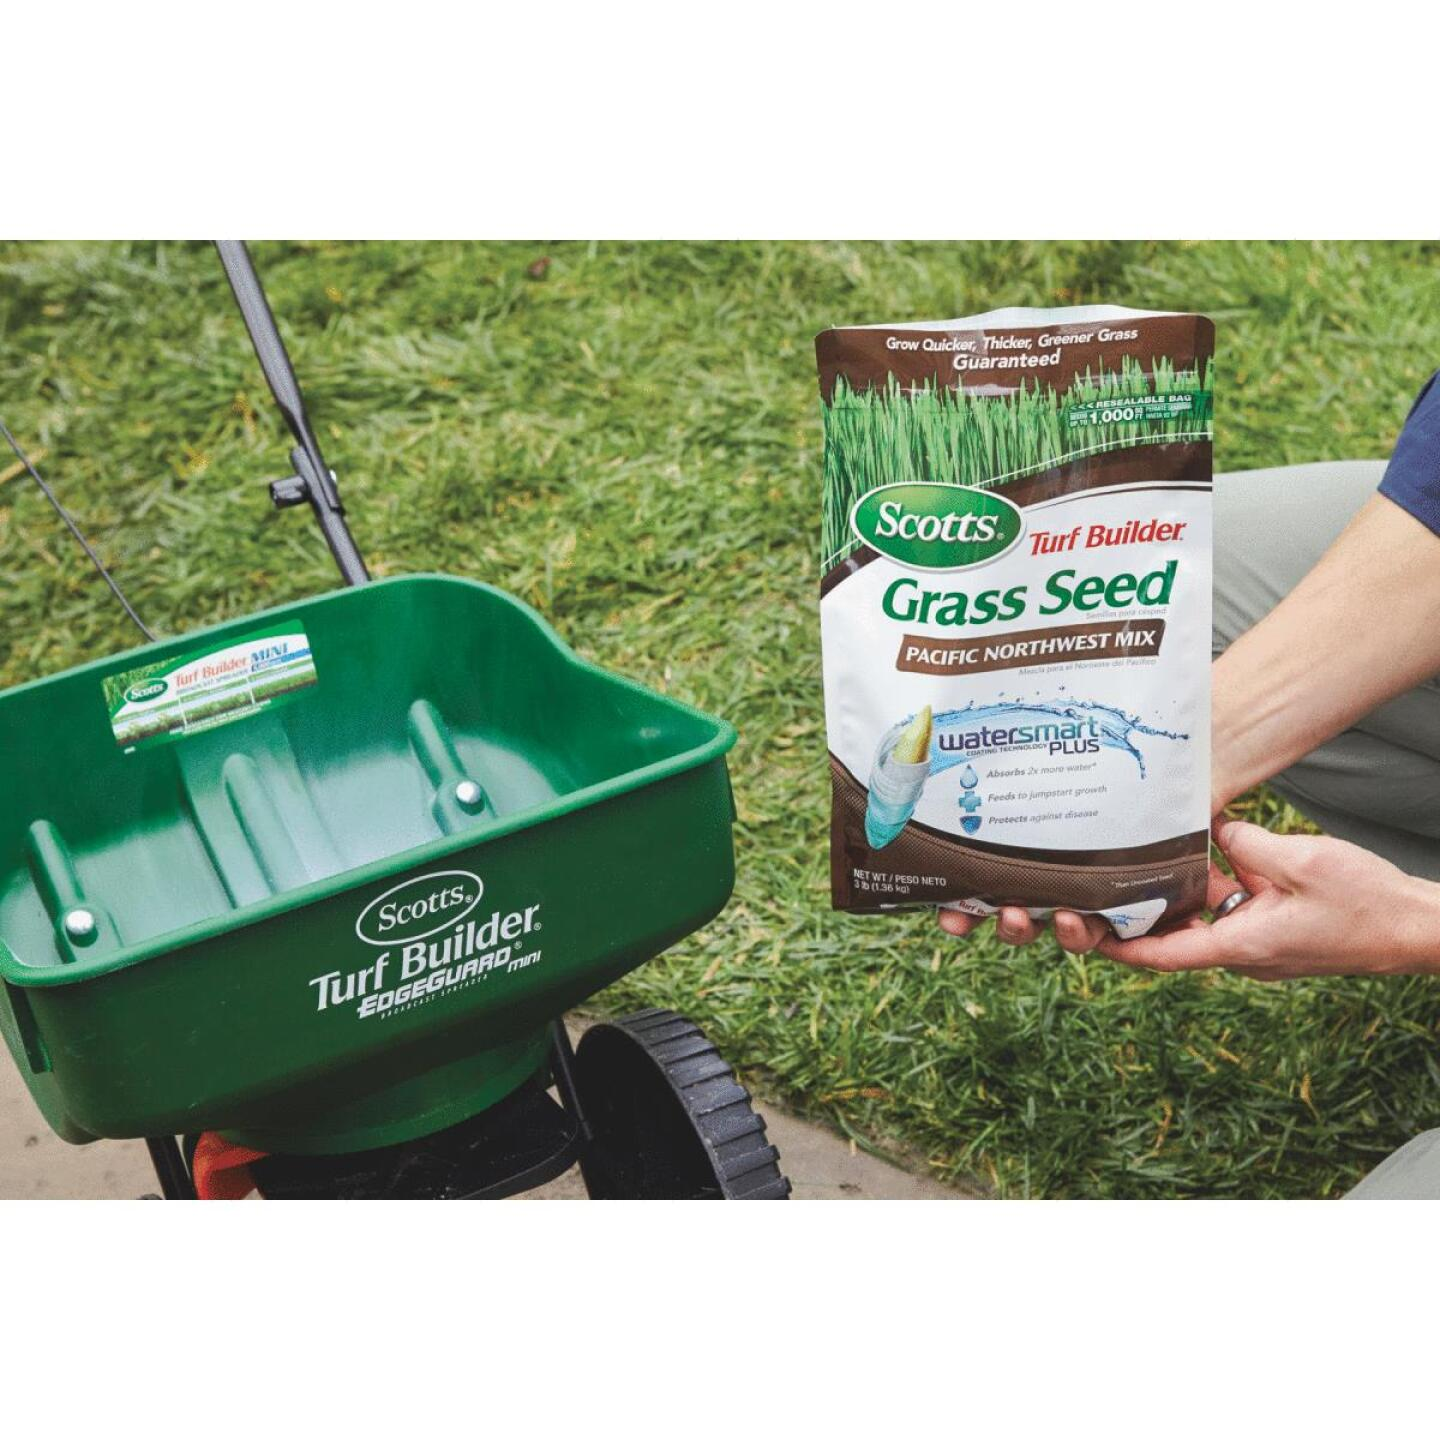 Scotts Turf Builder 3 Lb. Up To 1000 Sq. Ft. Coverage Pacific Northwest Grass Seed Image 2